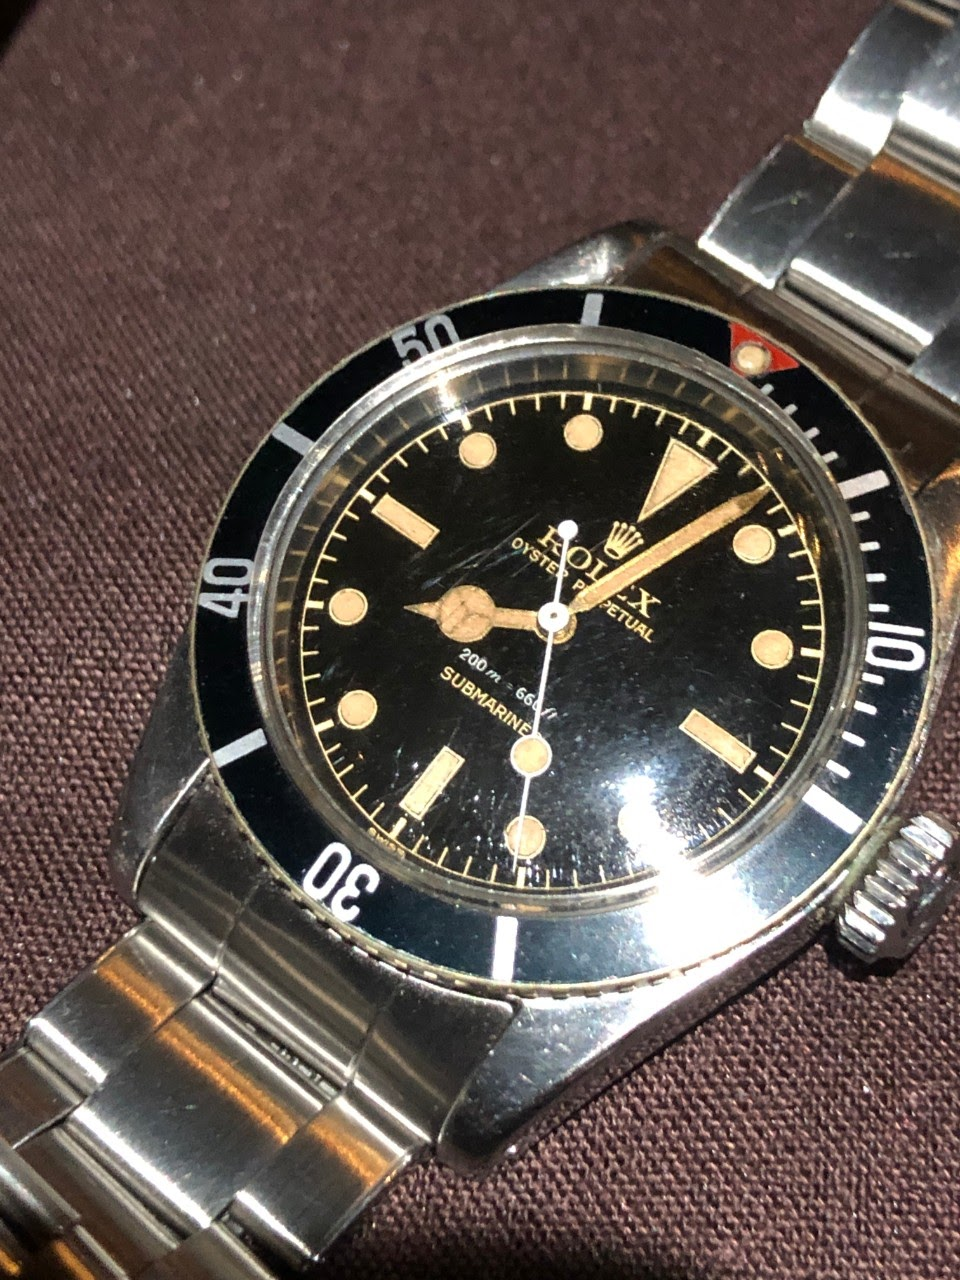 Rolex Rolex Big Guns Submariner 6538 Big Crown Rolex 6205 Circa